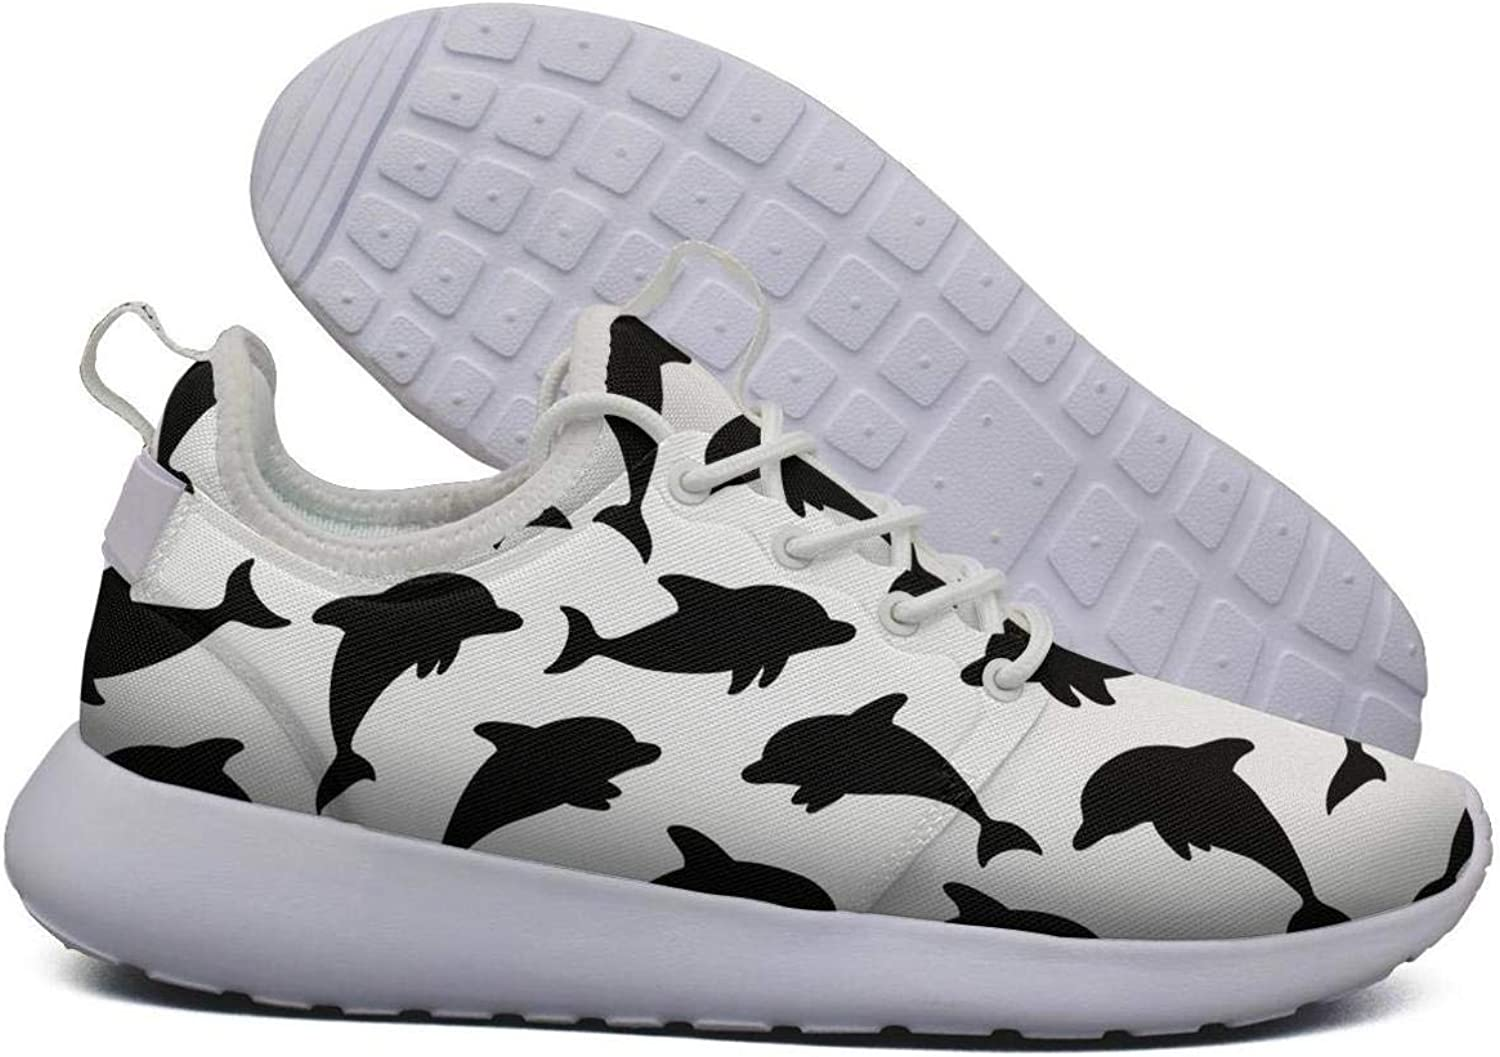 Hoohle Sports Womens Black Silhouette Dolphins Flex Mesh Roshe 2 Lightweight Casual Road Running shoes